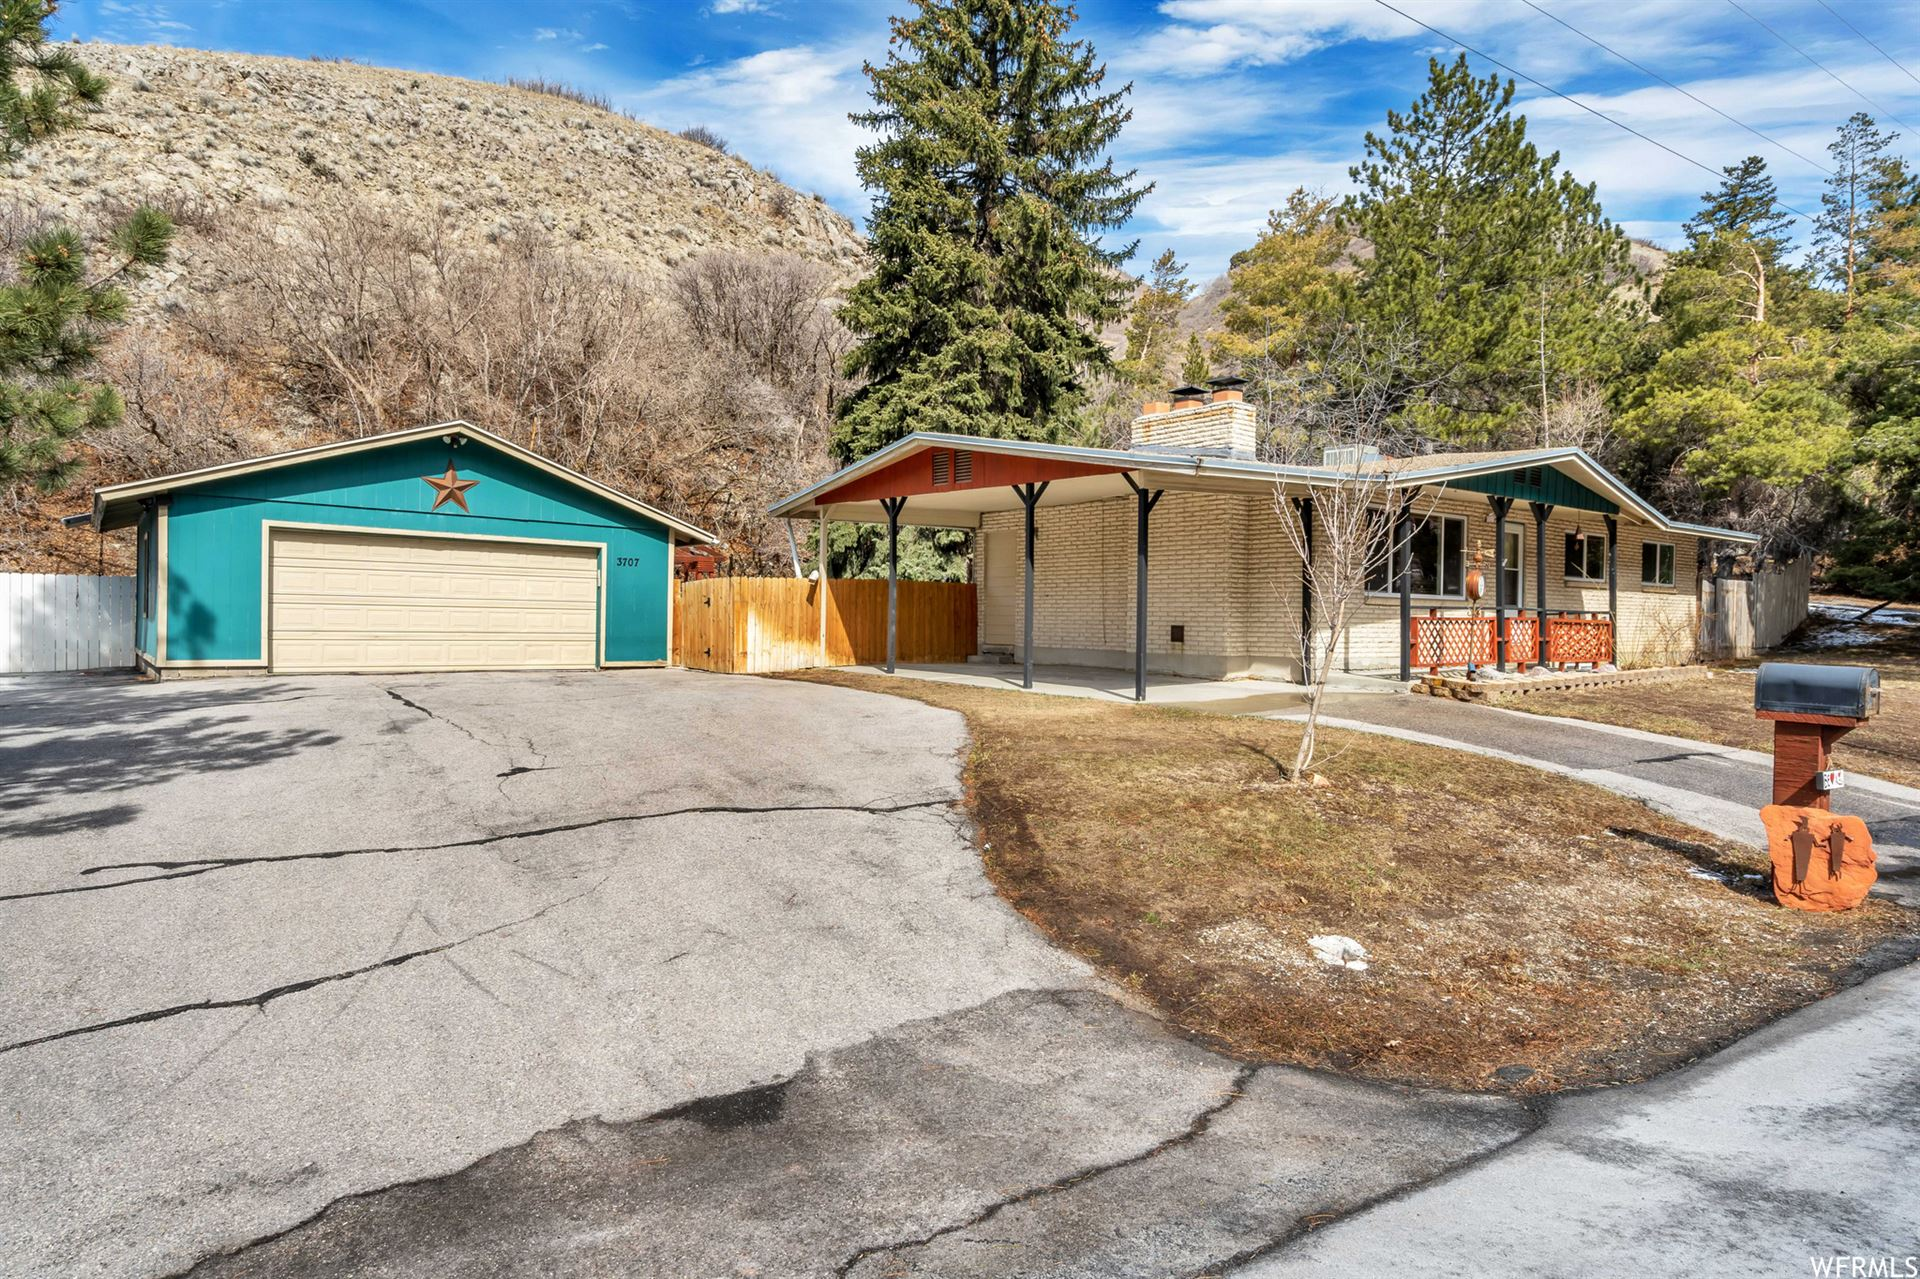 Photo of 3707 E EMIGRATION CYN S RD, Emigration Canyon, UT 84108 (MLS # 1728231)